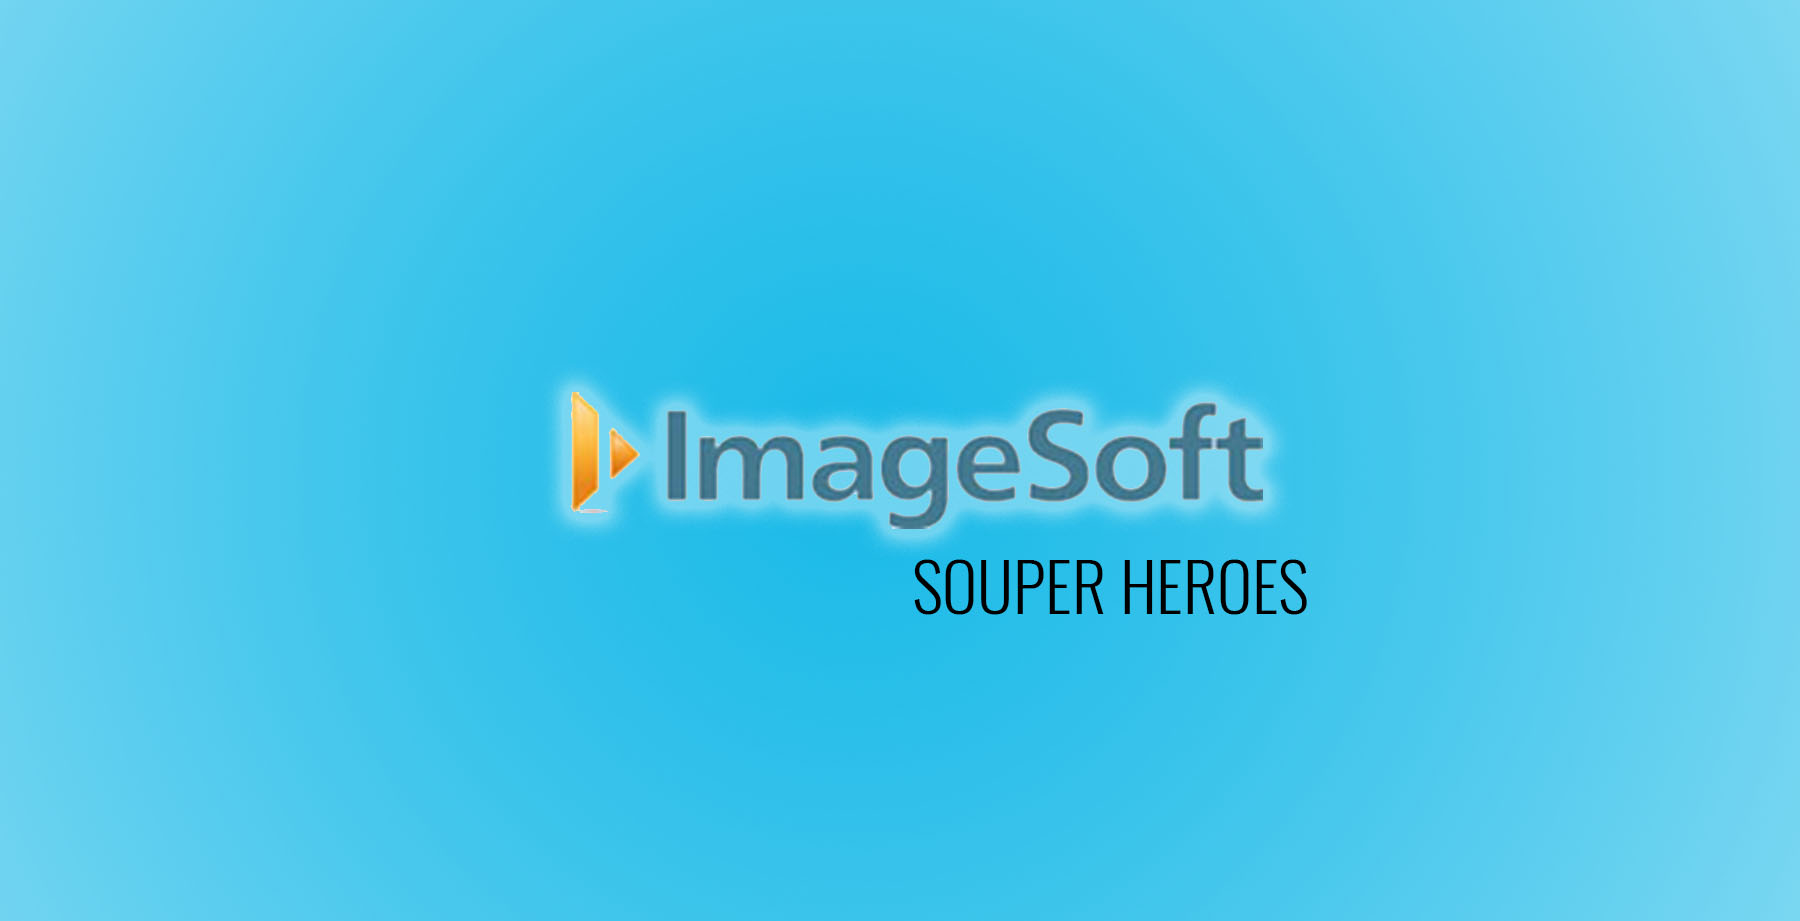 ImageSoft – Souper Heroes